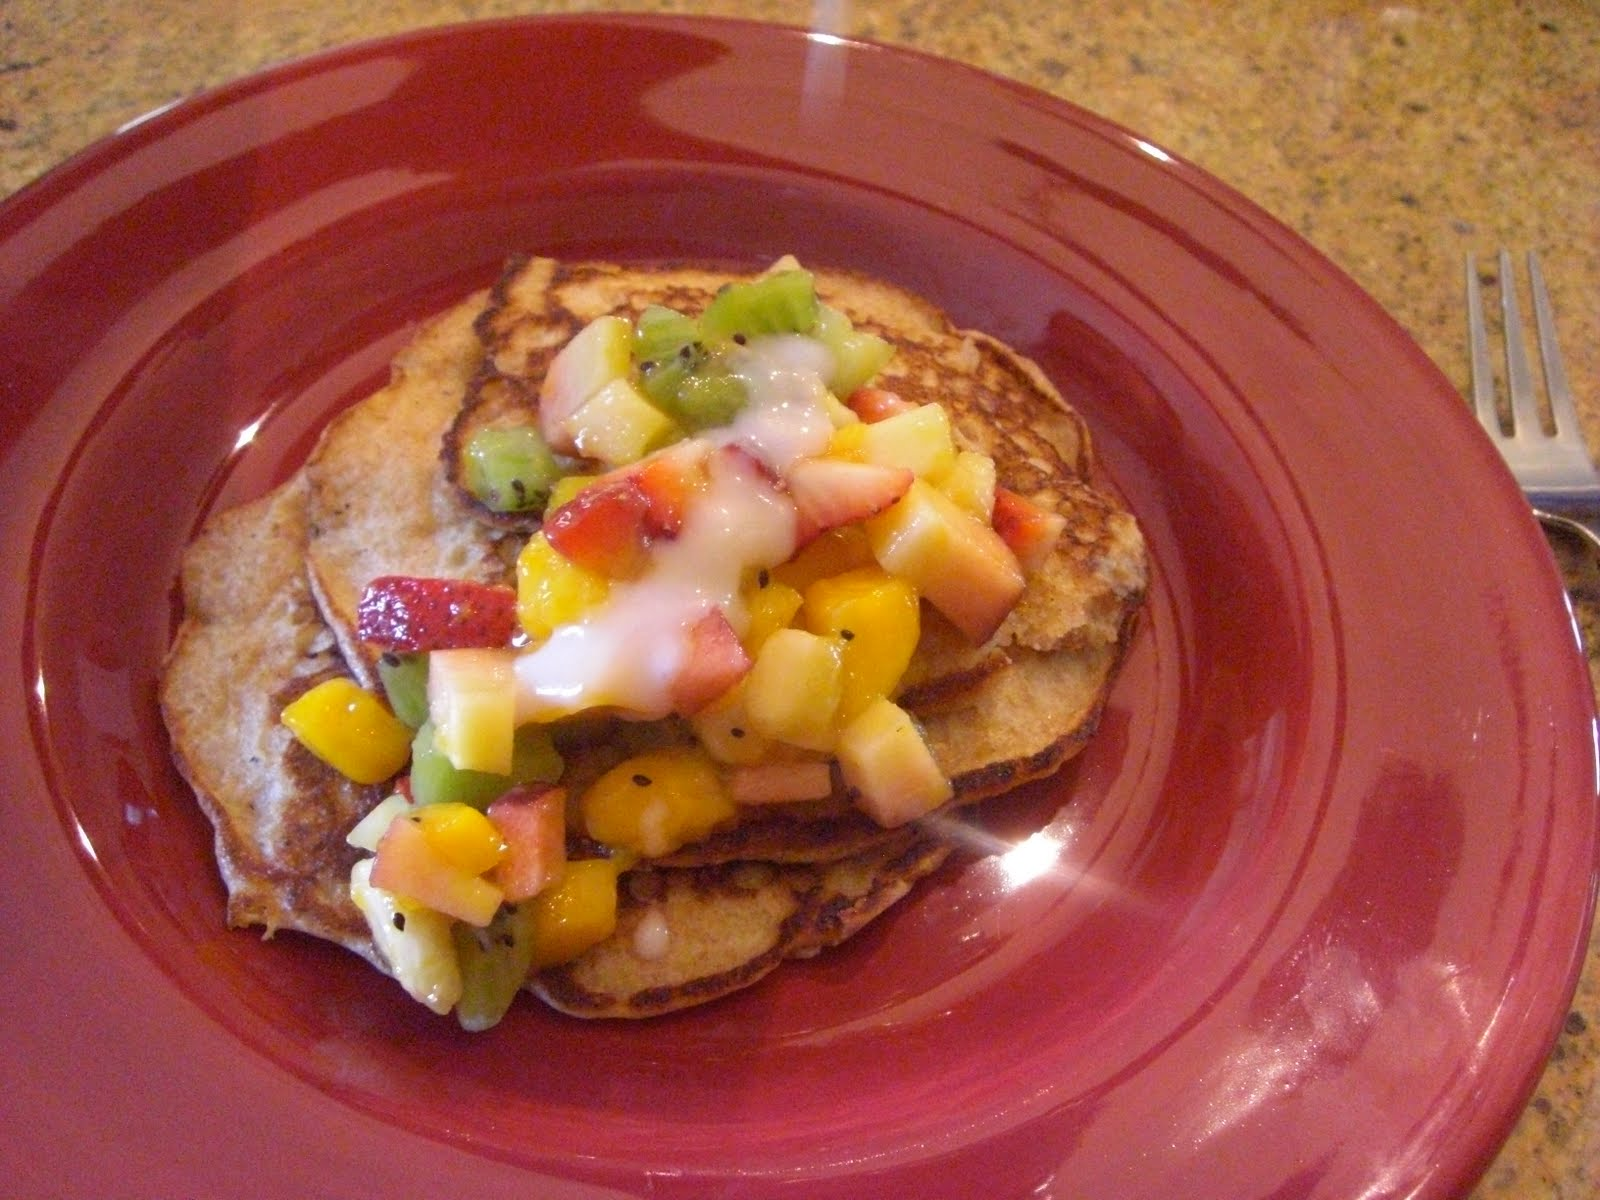 My life in food: Whole Wheat Pancakes with Coconut Syrup and Fruit